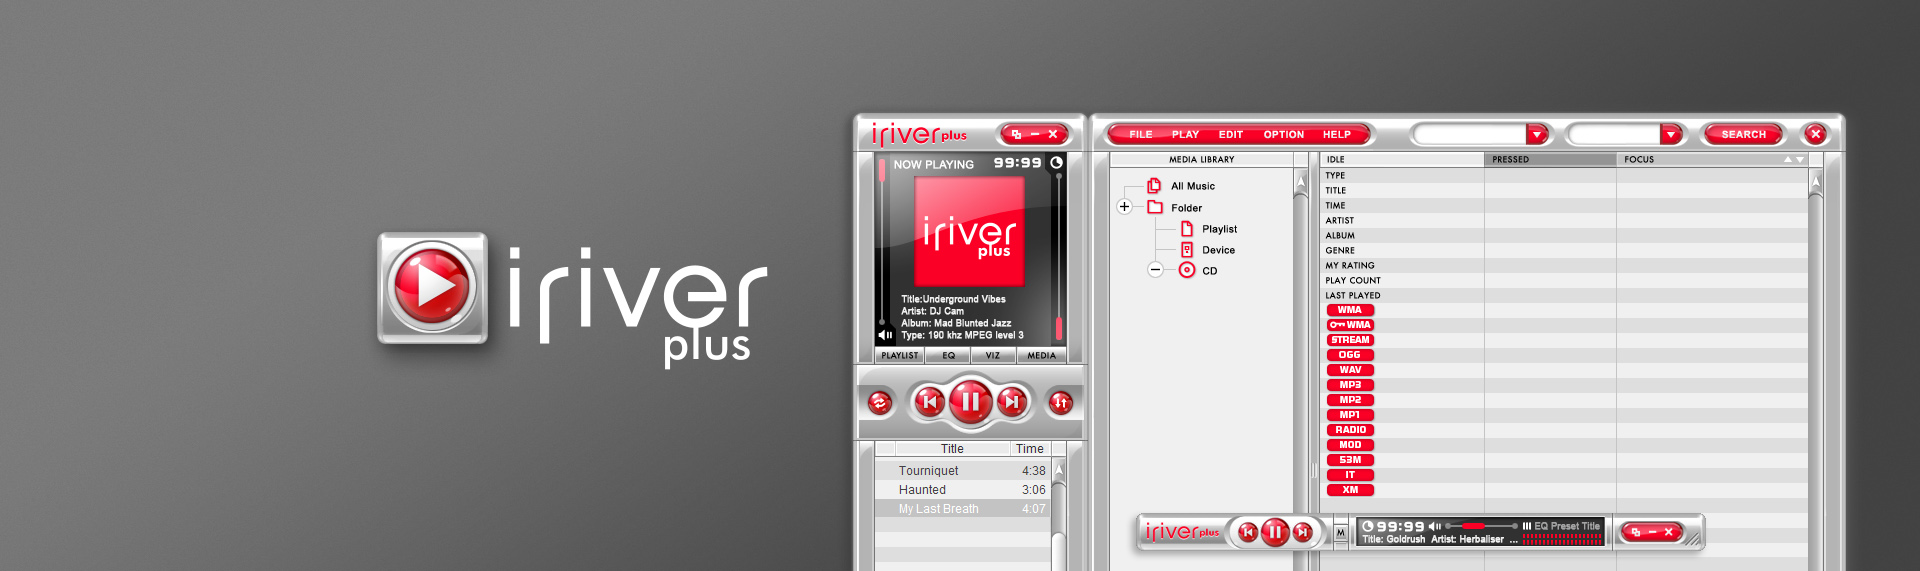 iRiver Plus  Desktop Application UX & UI Design  When The Skins Factory was approached to design & create iRiver's new digital jukebox user interface, iRiver Plus, our team set out to develop a style that would set this application apart, in a market that was saturated with digital audio media players & jukeboxes. A fusion of functionality & design, iRiver Plus is the culmination of years of user interface design experience and attention to detail that vaulted this desktop audio appliance ahead of its competitors.